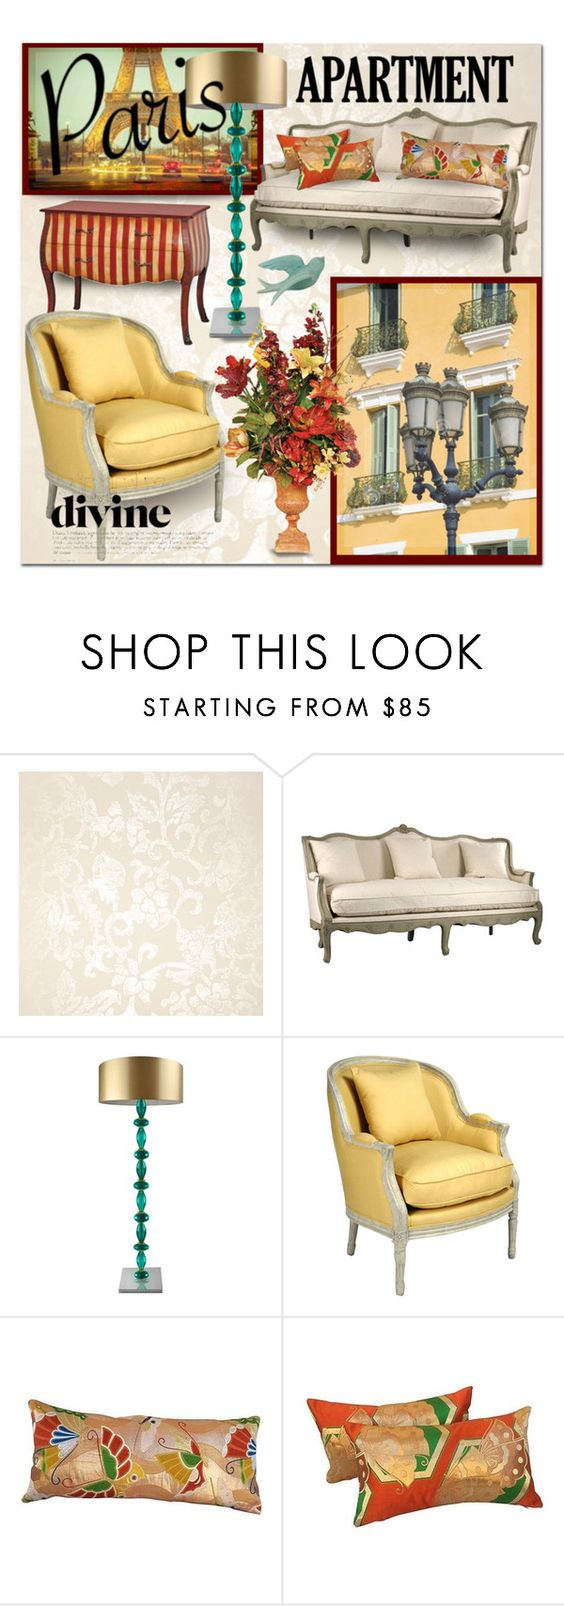 """belle maison"" by collagette ❤ liked on Polyvore featuring interior, interiors, interior design, home, home decor, interior decorating, Designers Guild, WALL, La Vie en Rose and parisapartment"